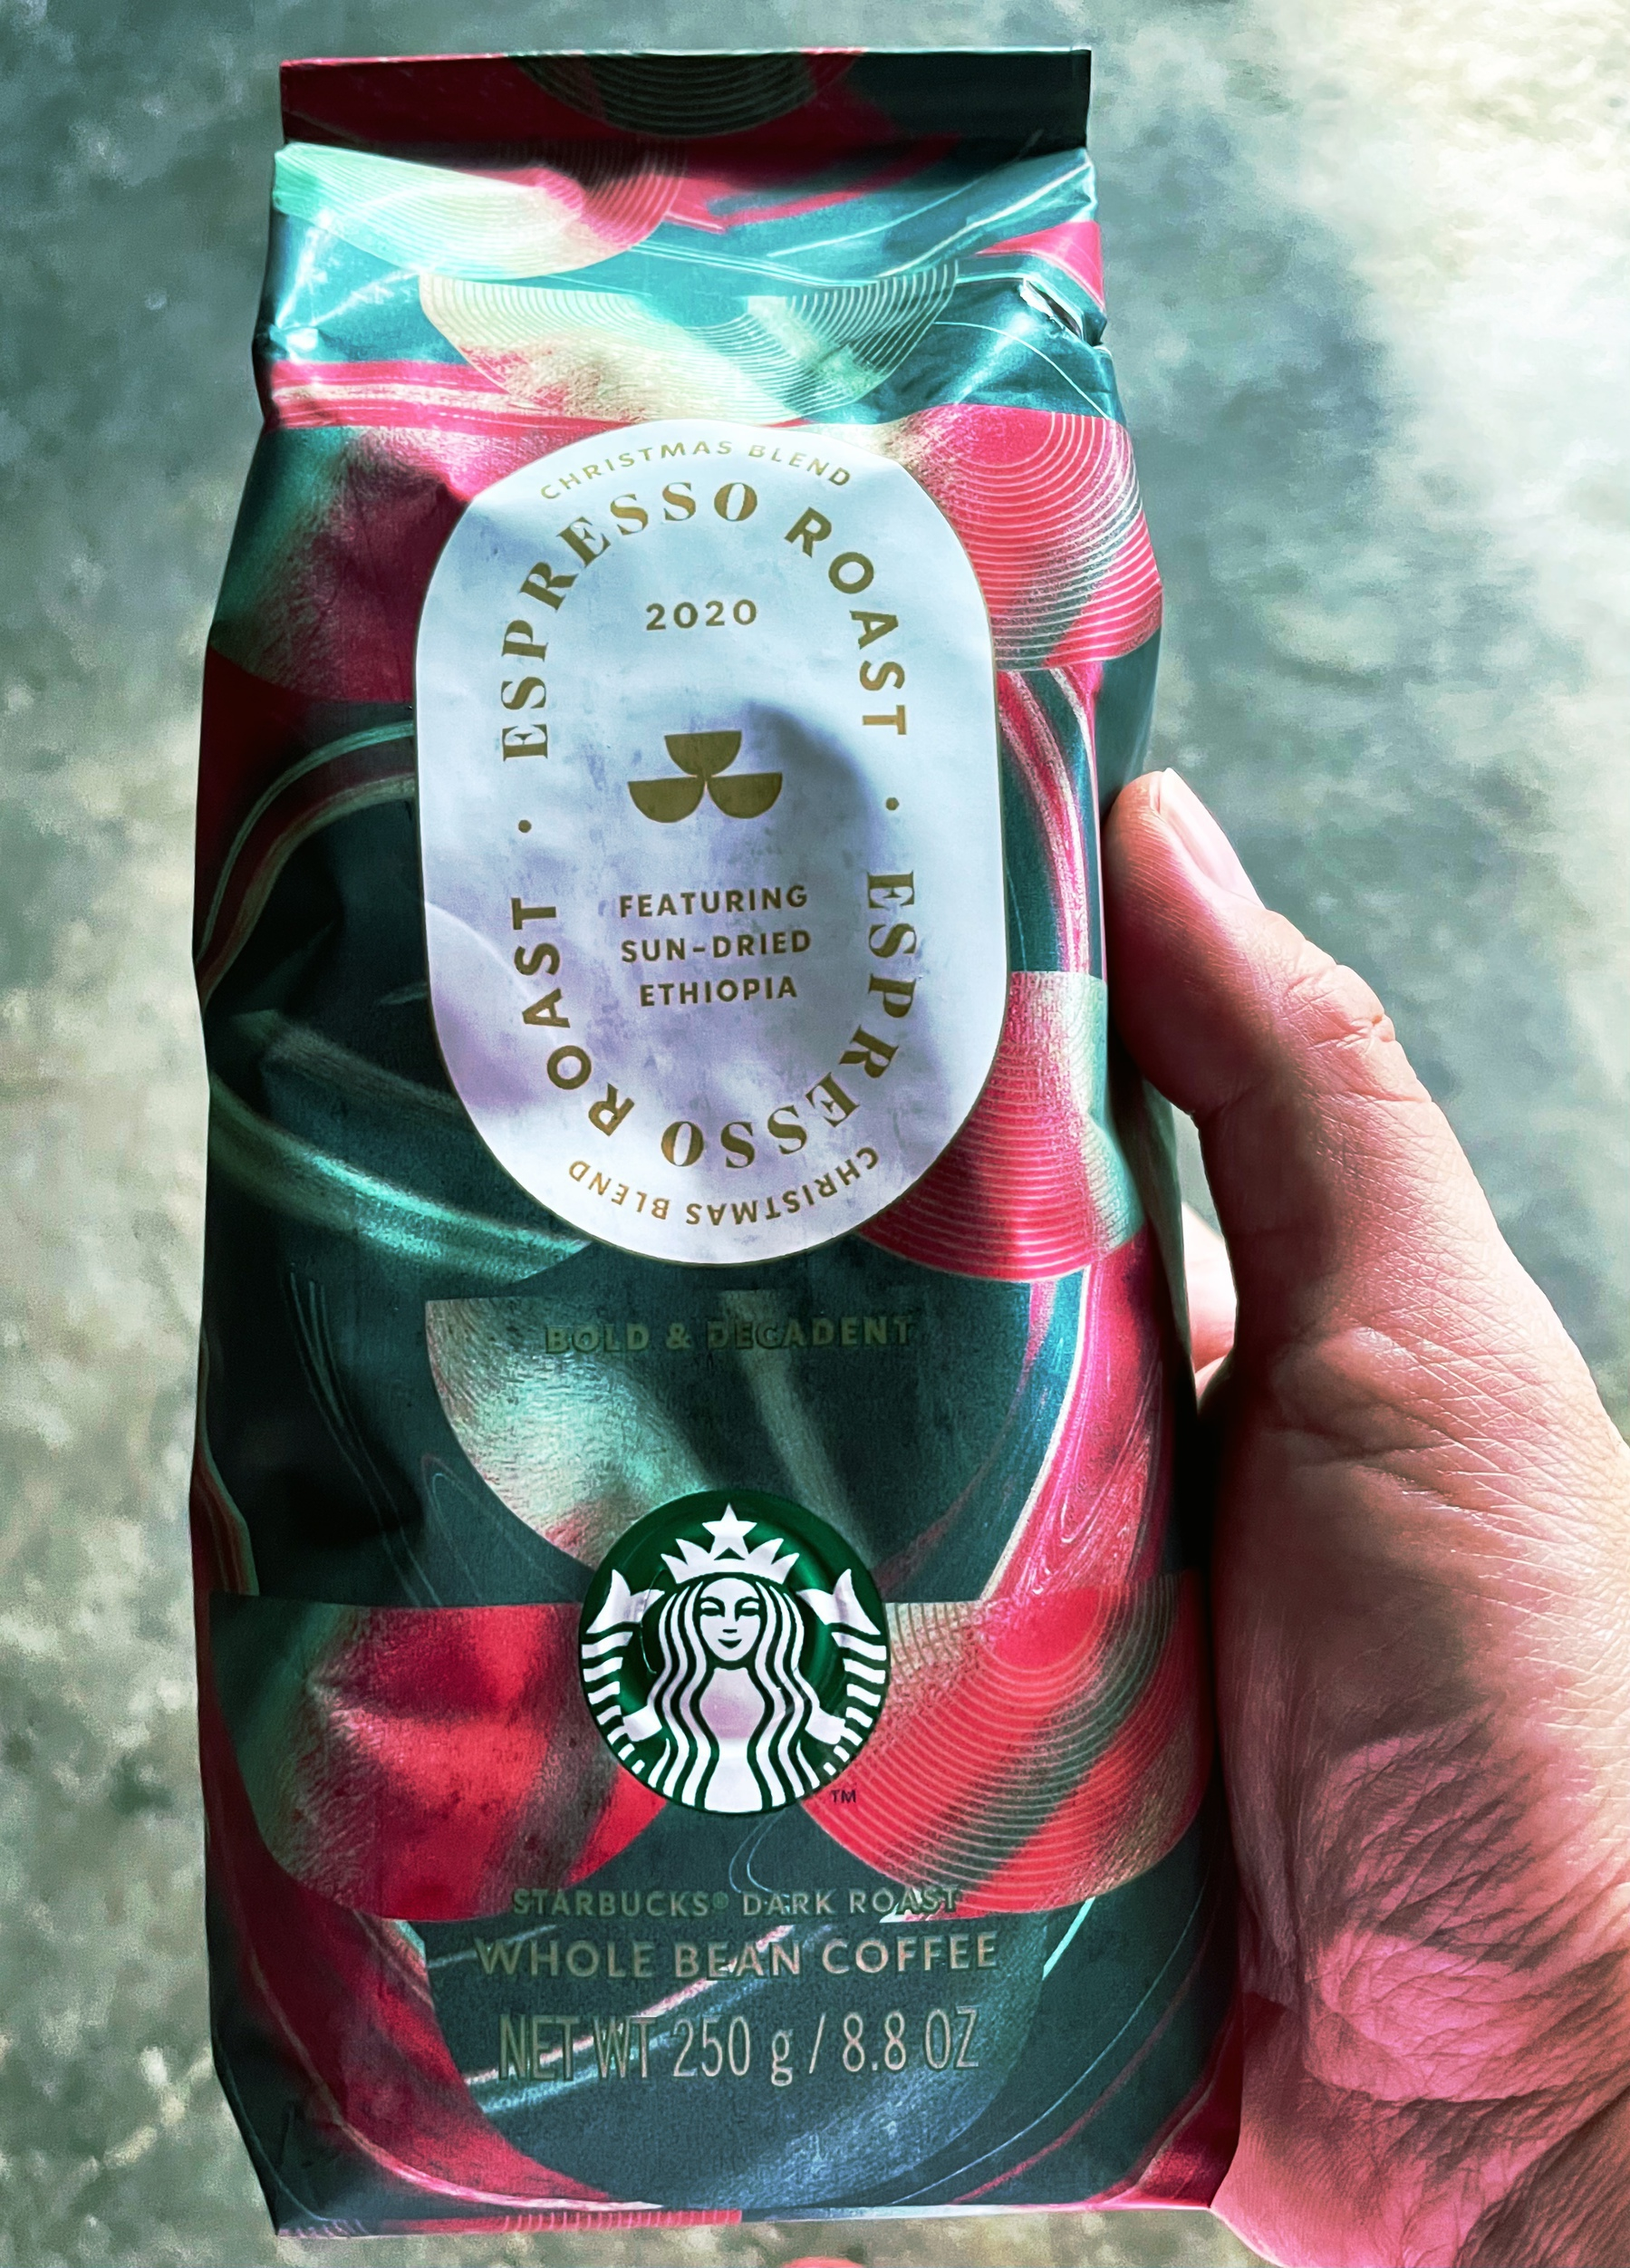 starbucks christmas blend 2020 espresso roast whole beans